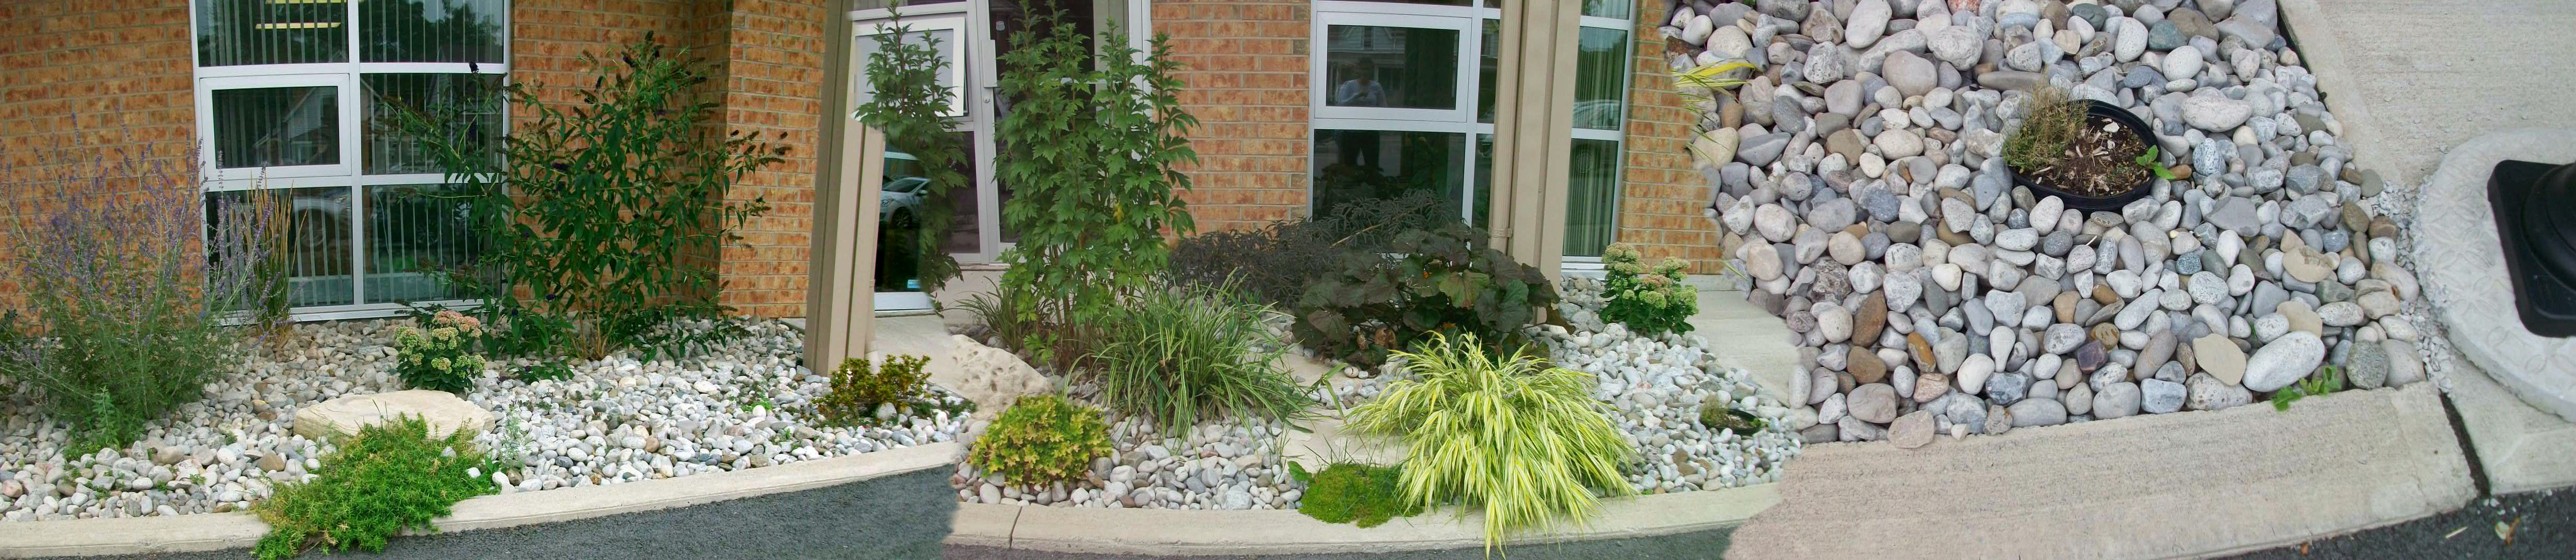 Landscaping featuring some light coloured rocks, shrubs and green plants